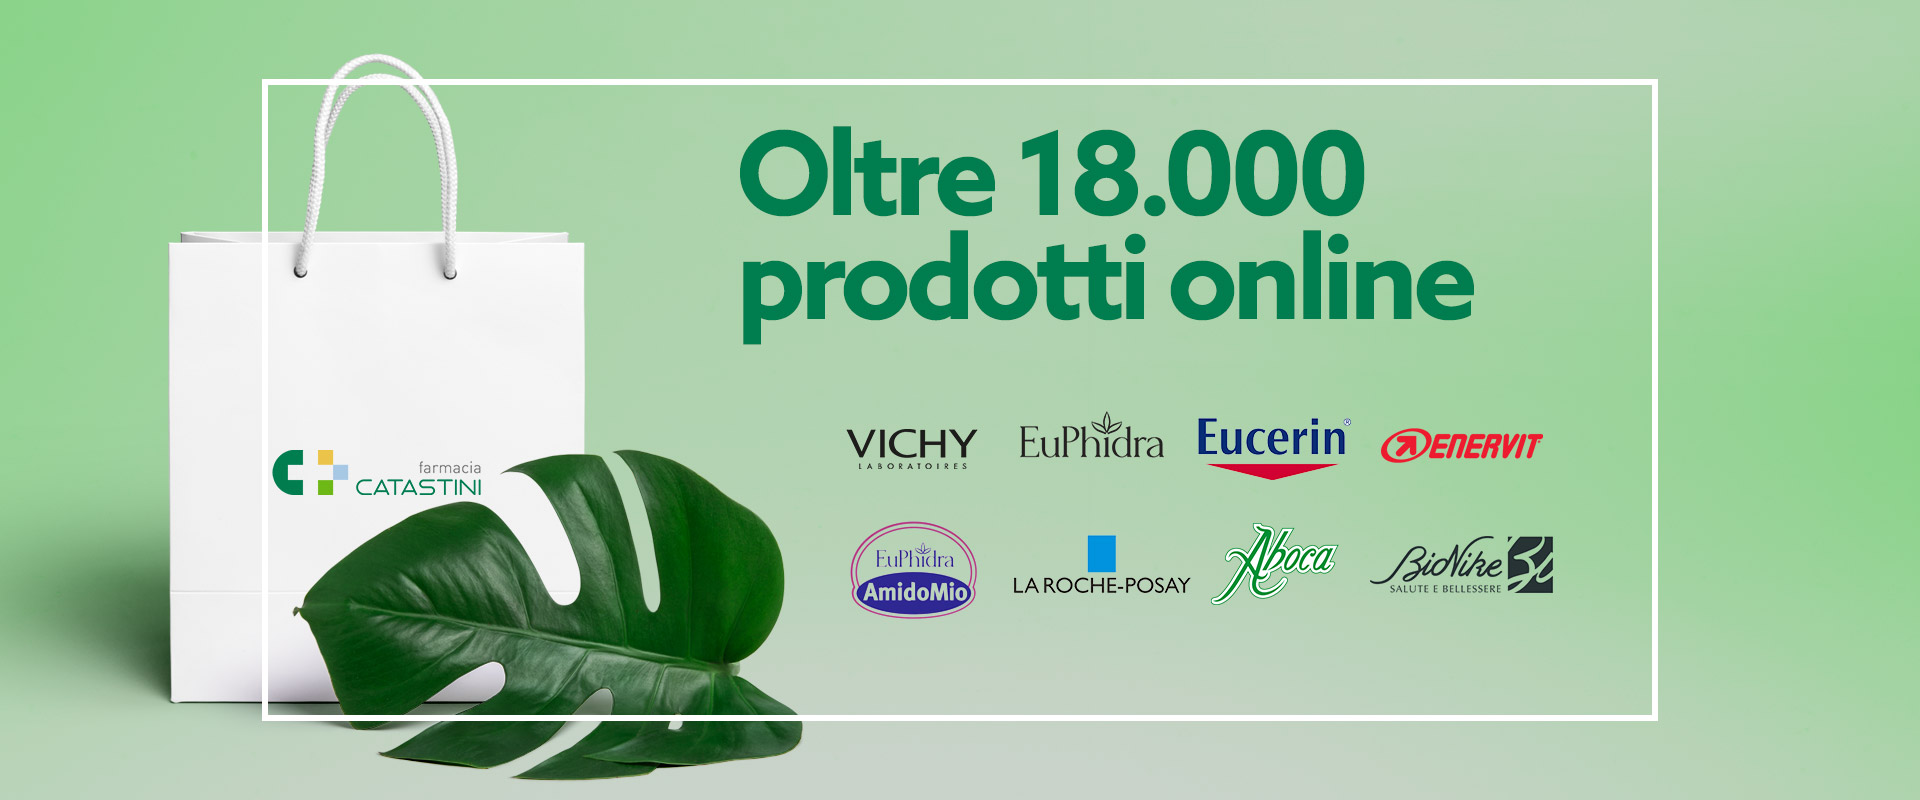 E-commerce Farmacia Catastini